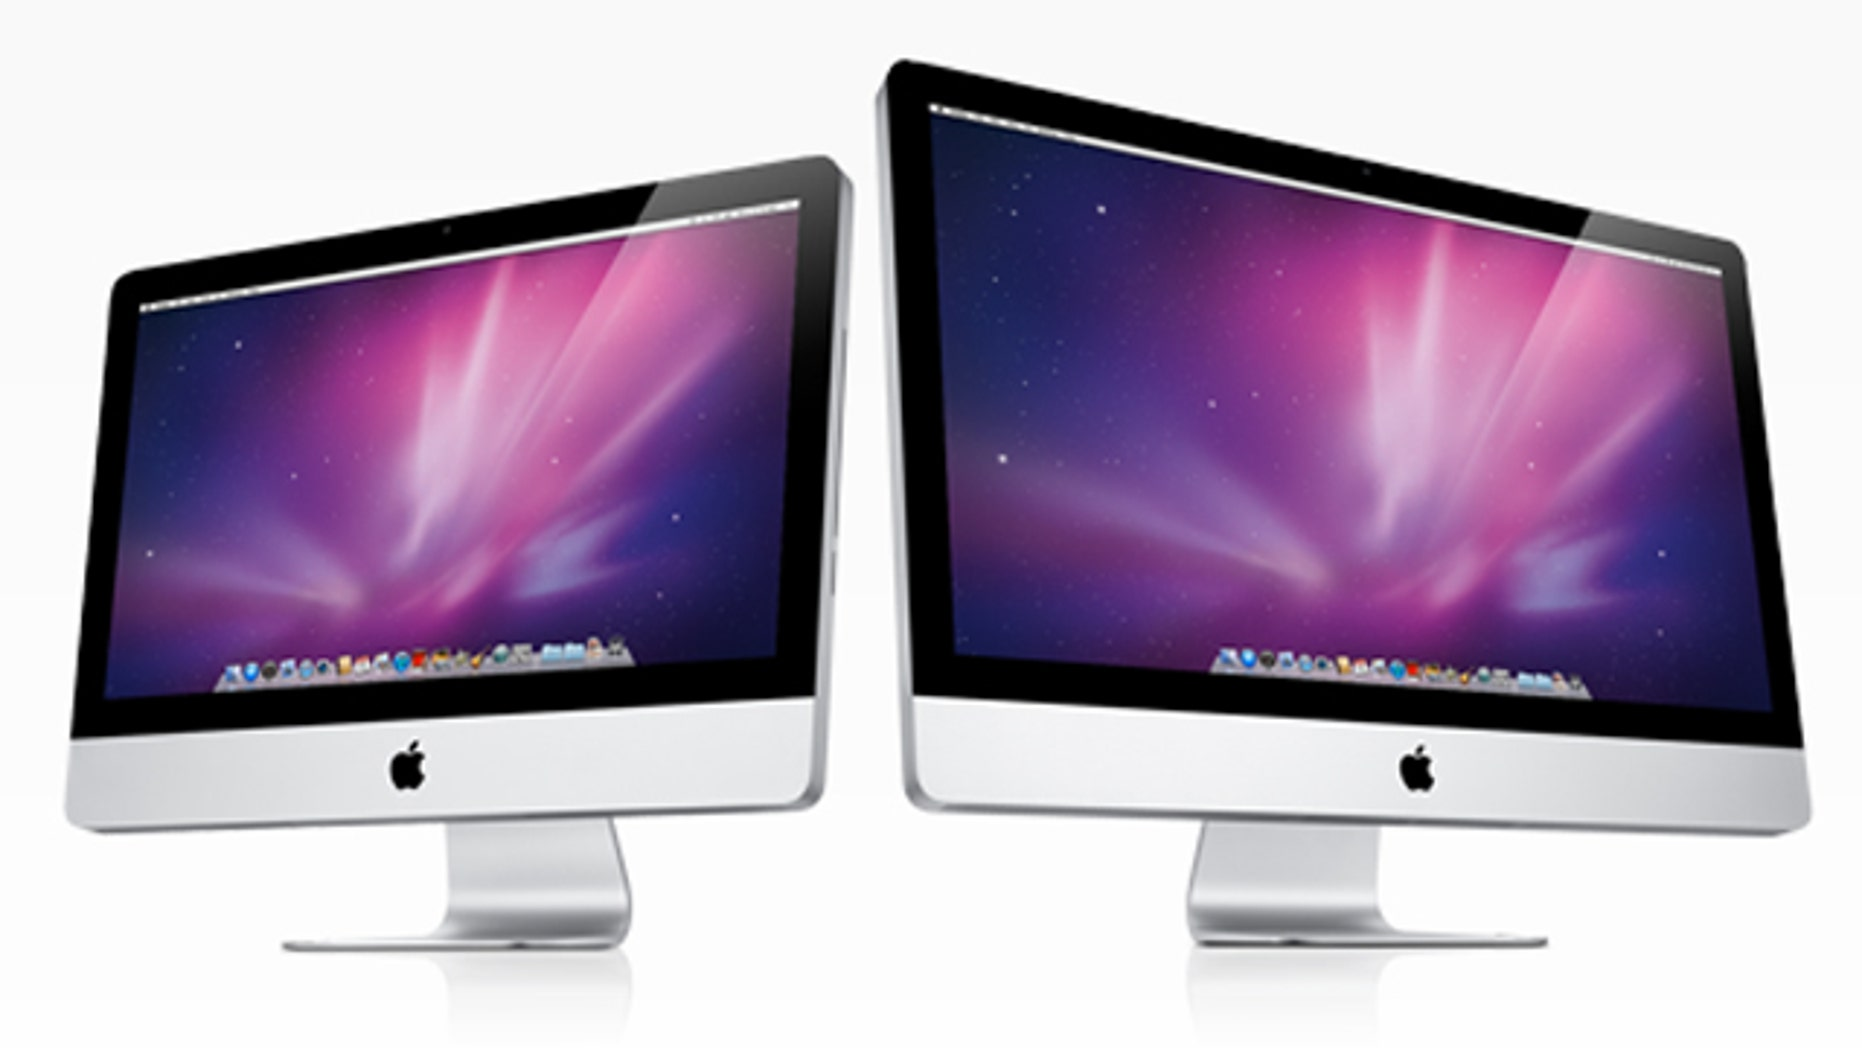 The new Apple iMac